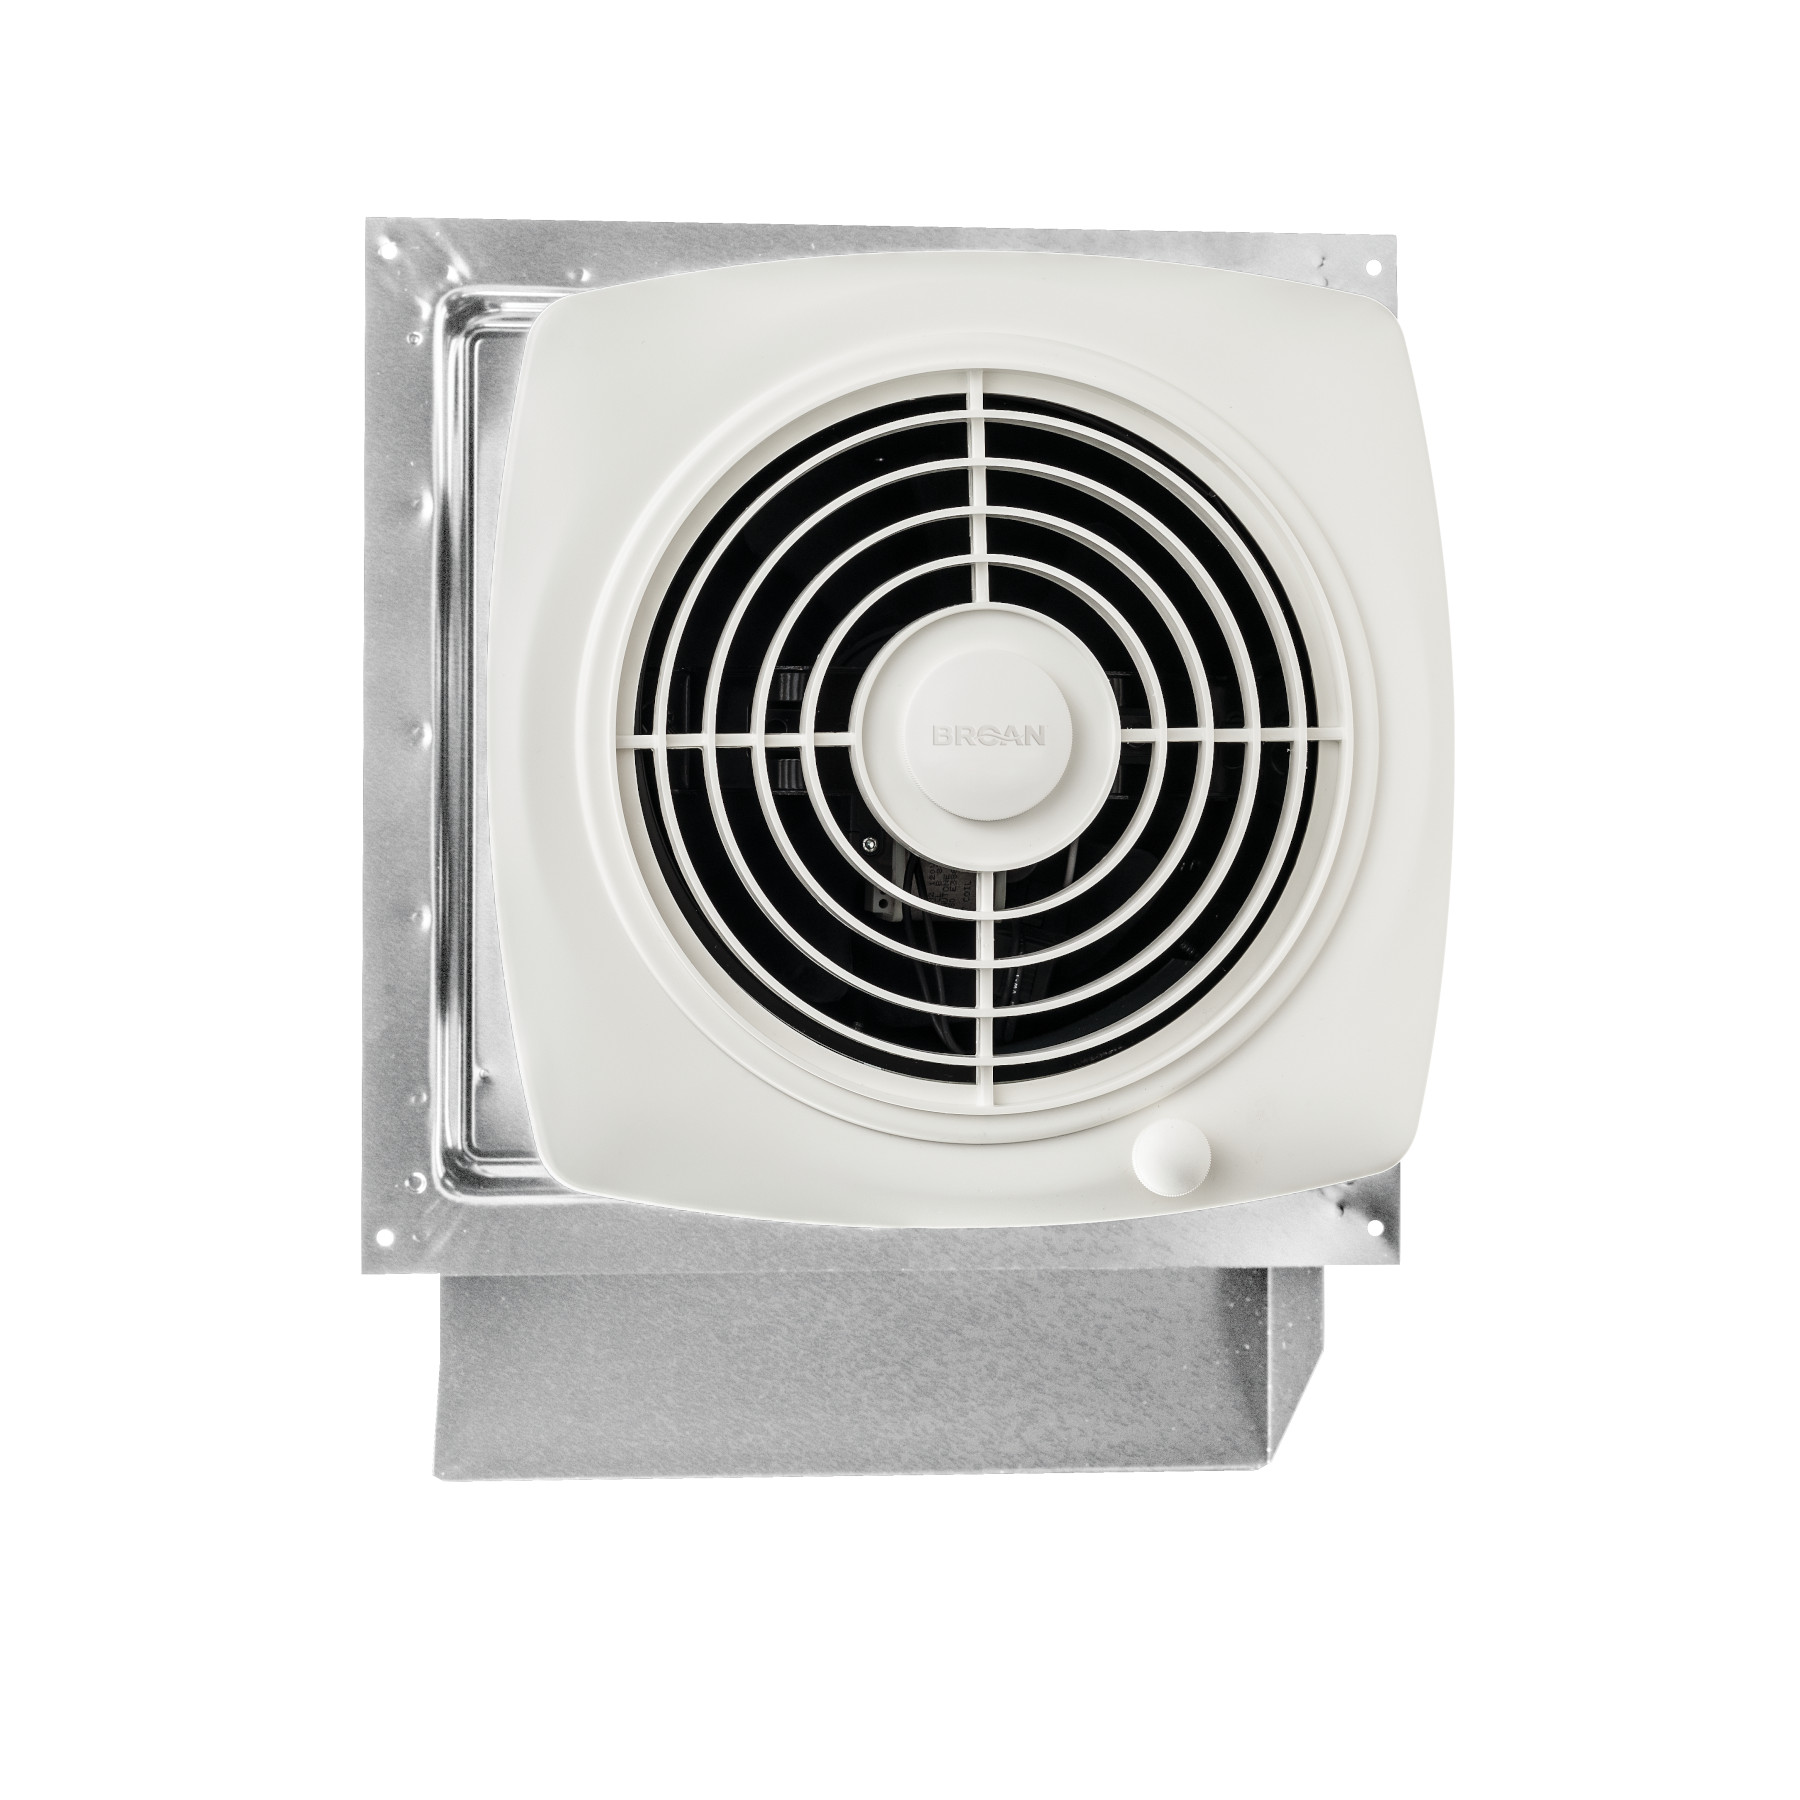 Broan® 8-Inch Through Wall Exhaust Vent Fan, 180 CFM